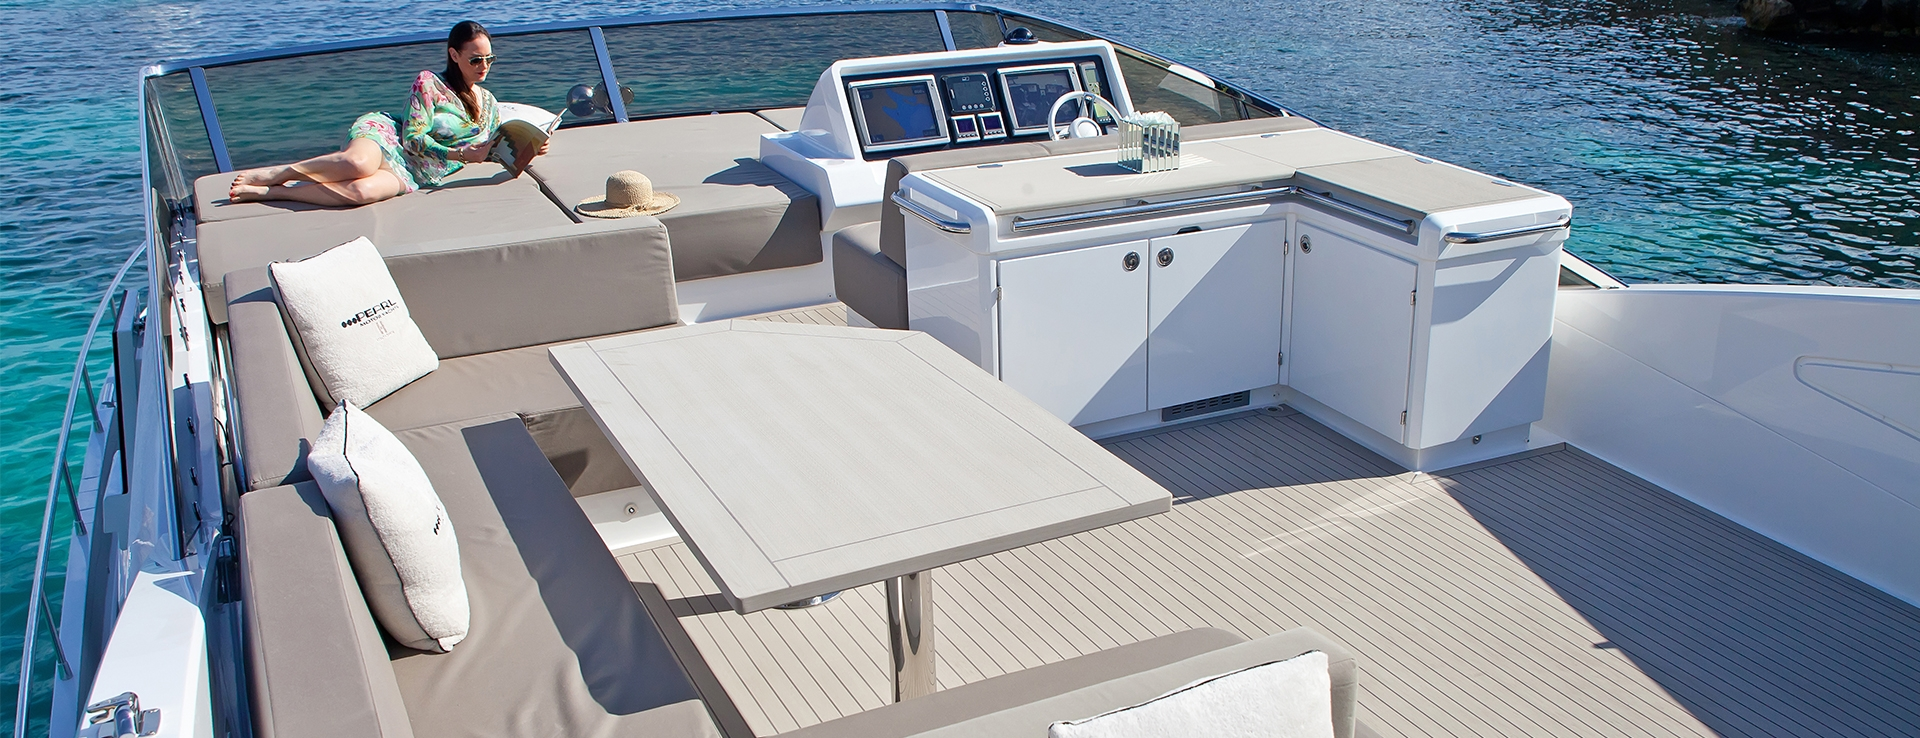 Yacht Summer Breeze 1 5